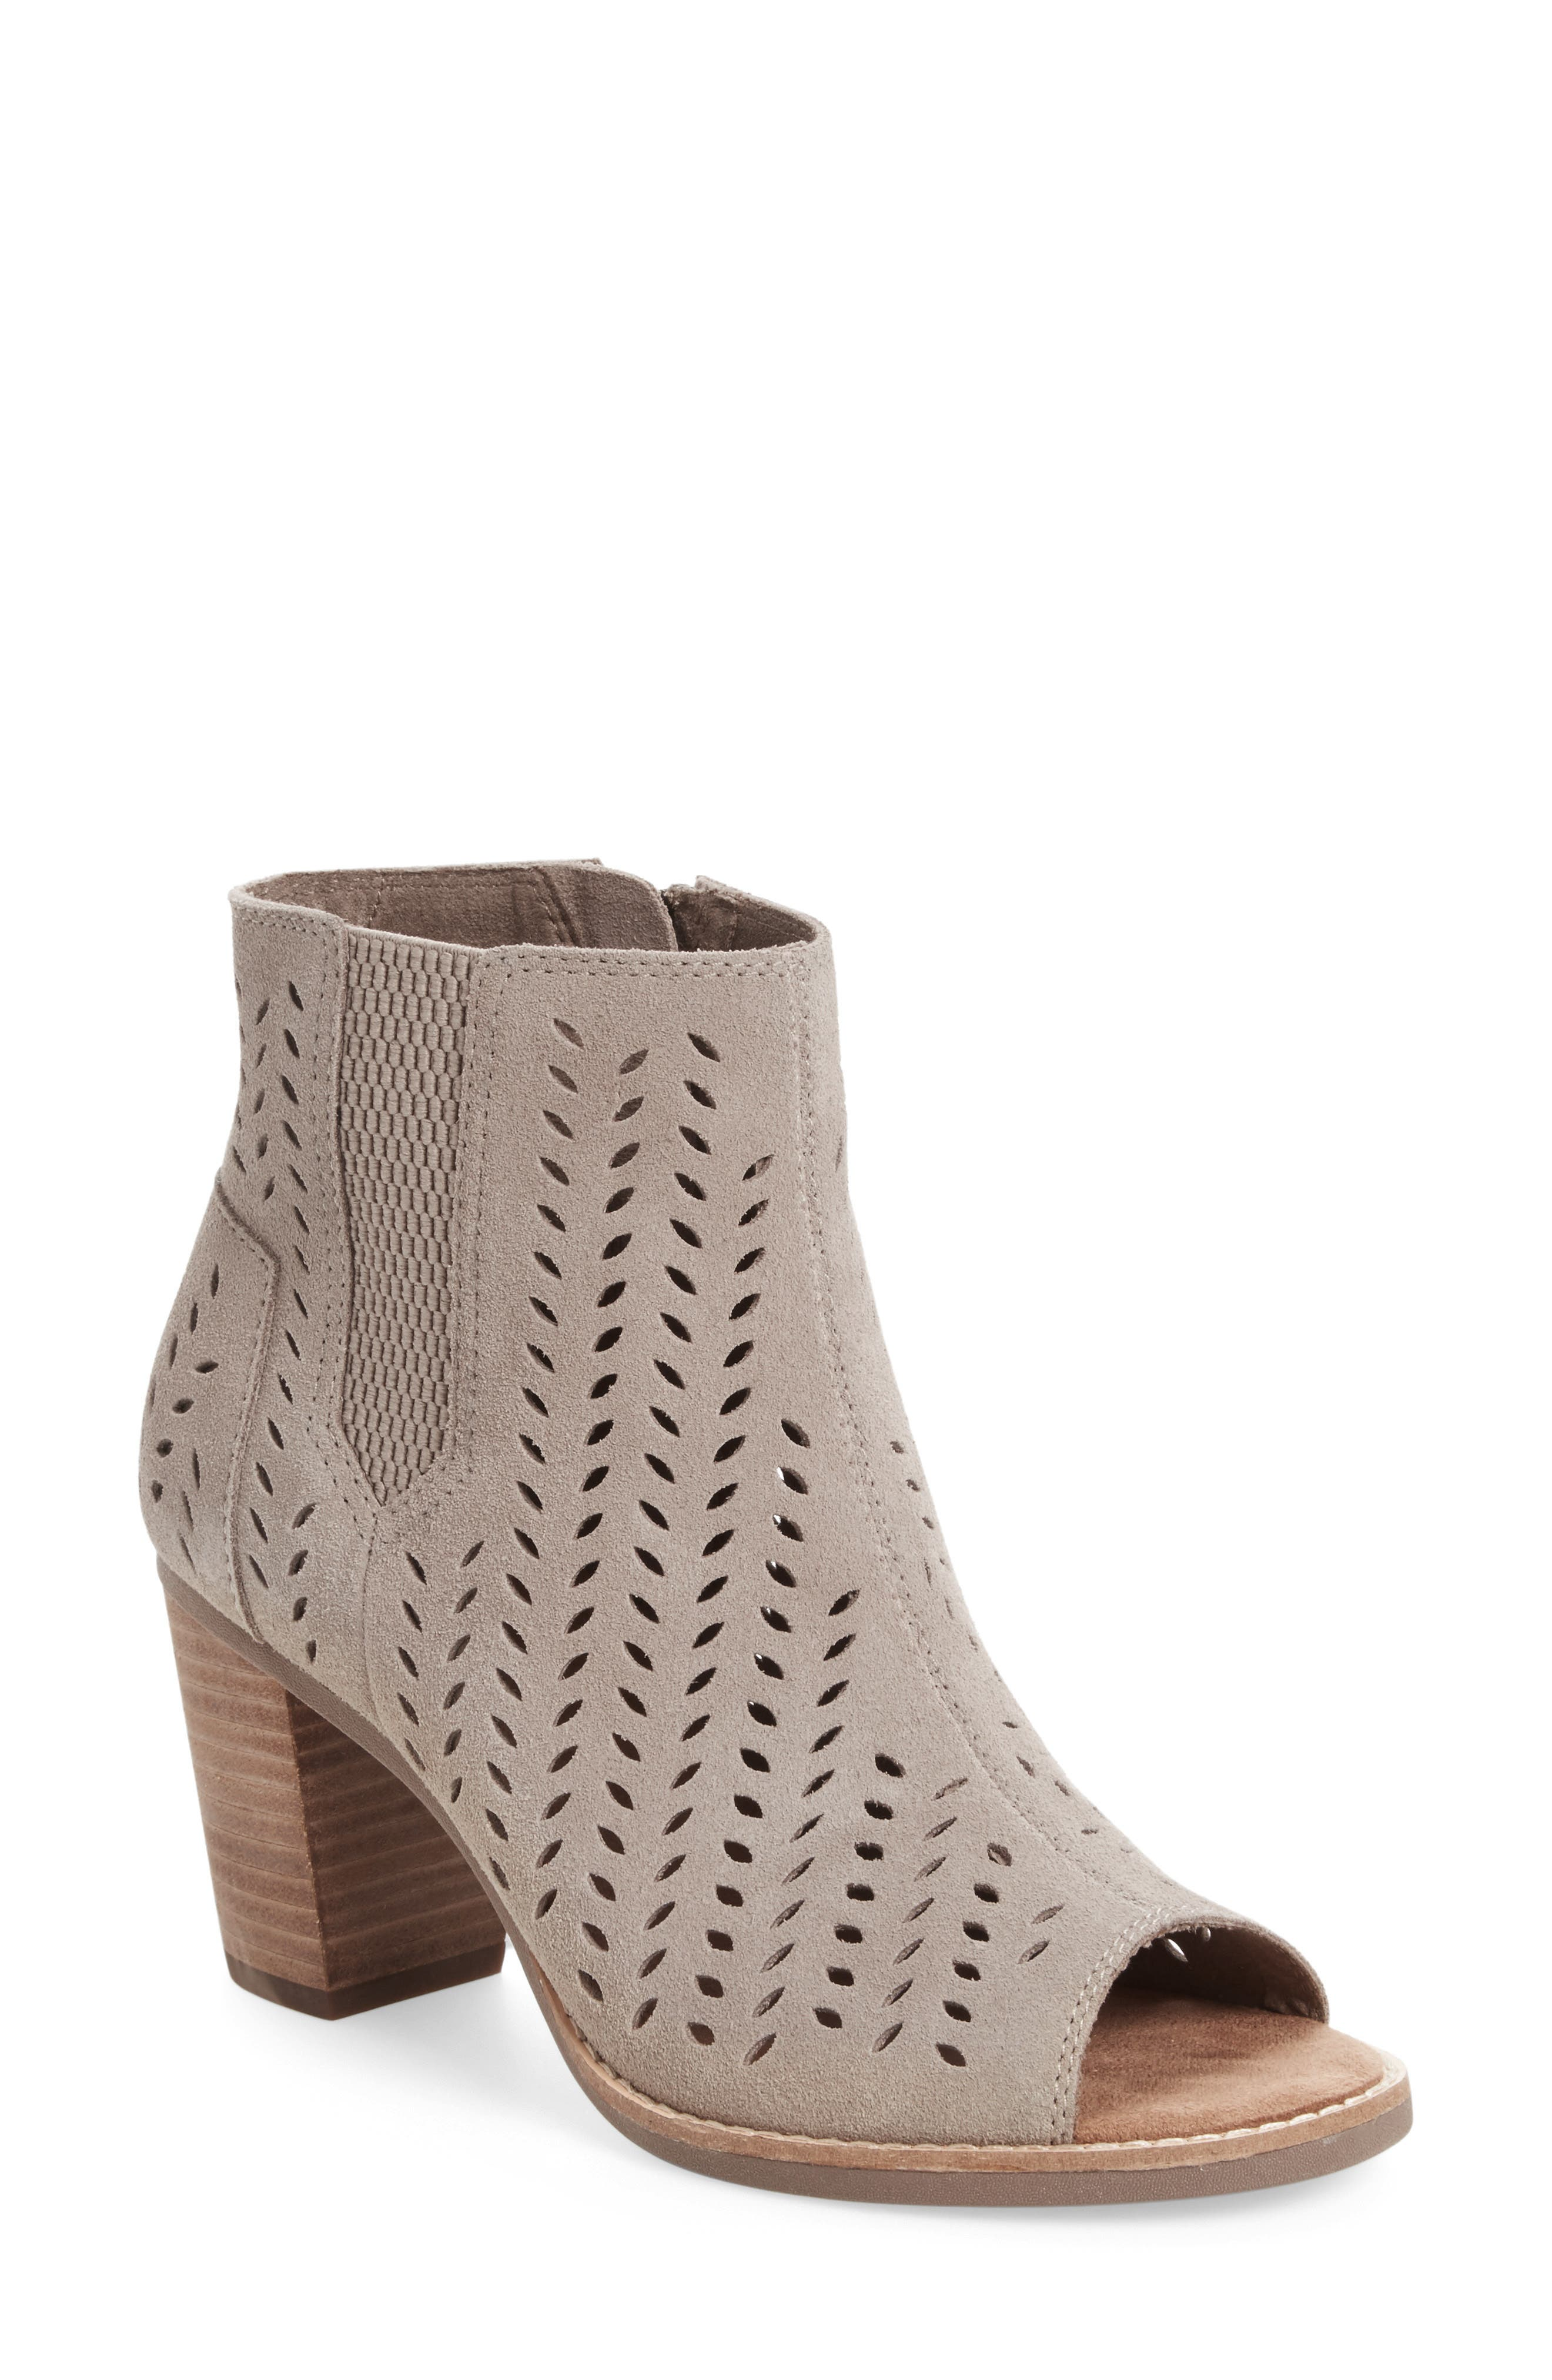 Alternate Image 1 Selected - TOMS Majorca Perforated Suede Bootie (Women)